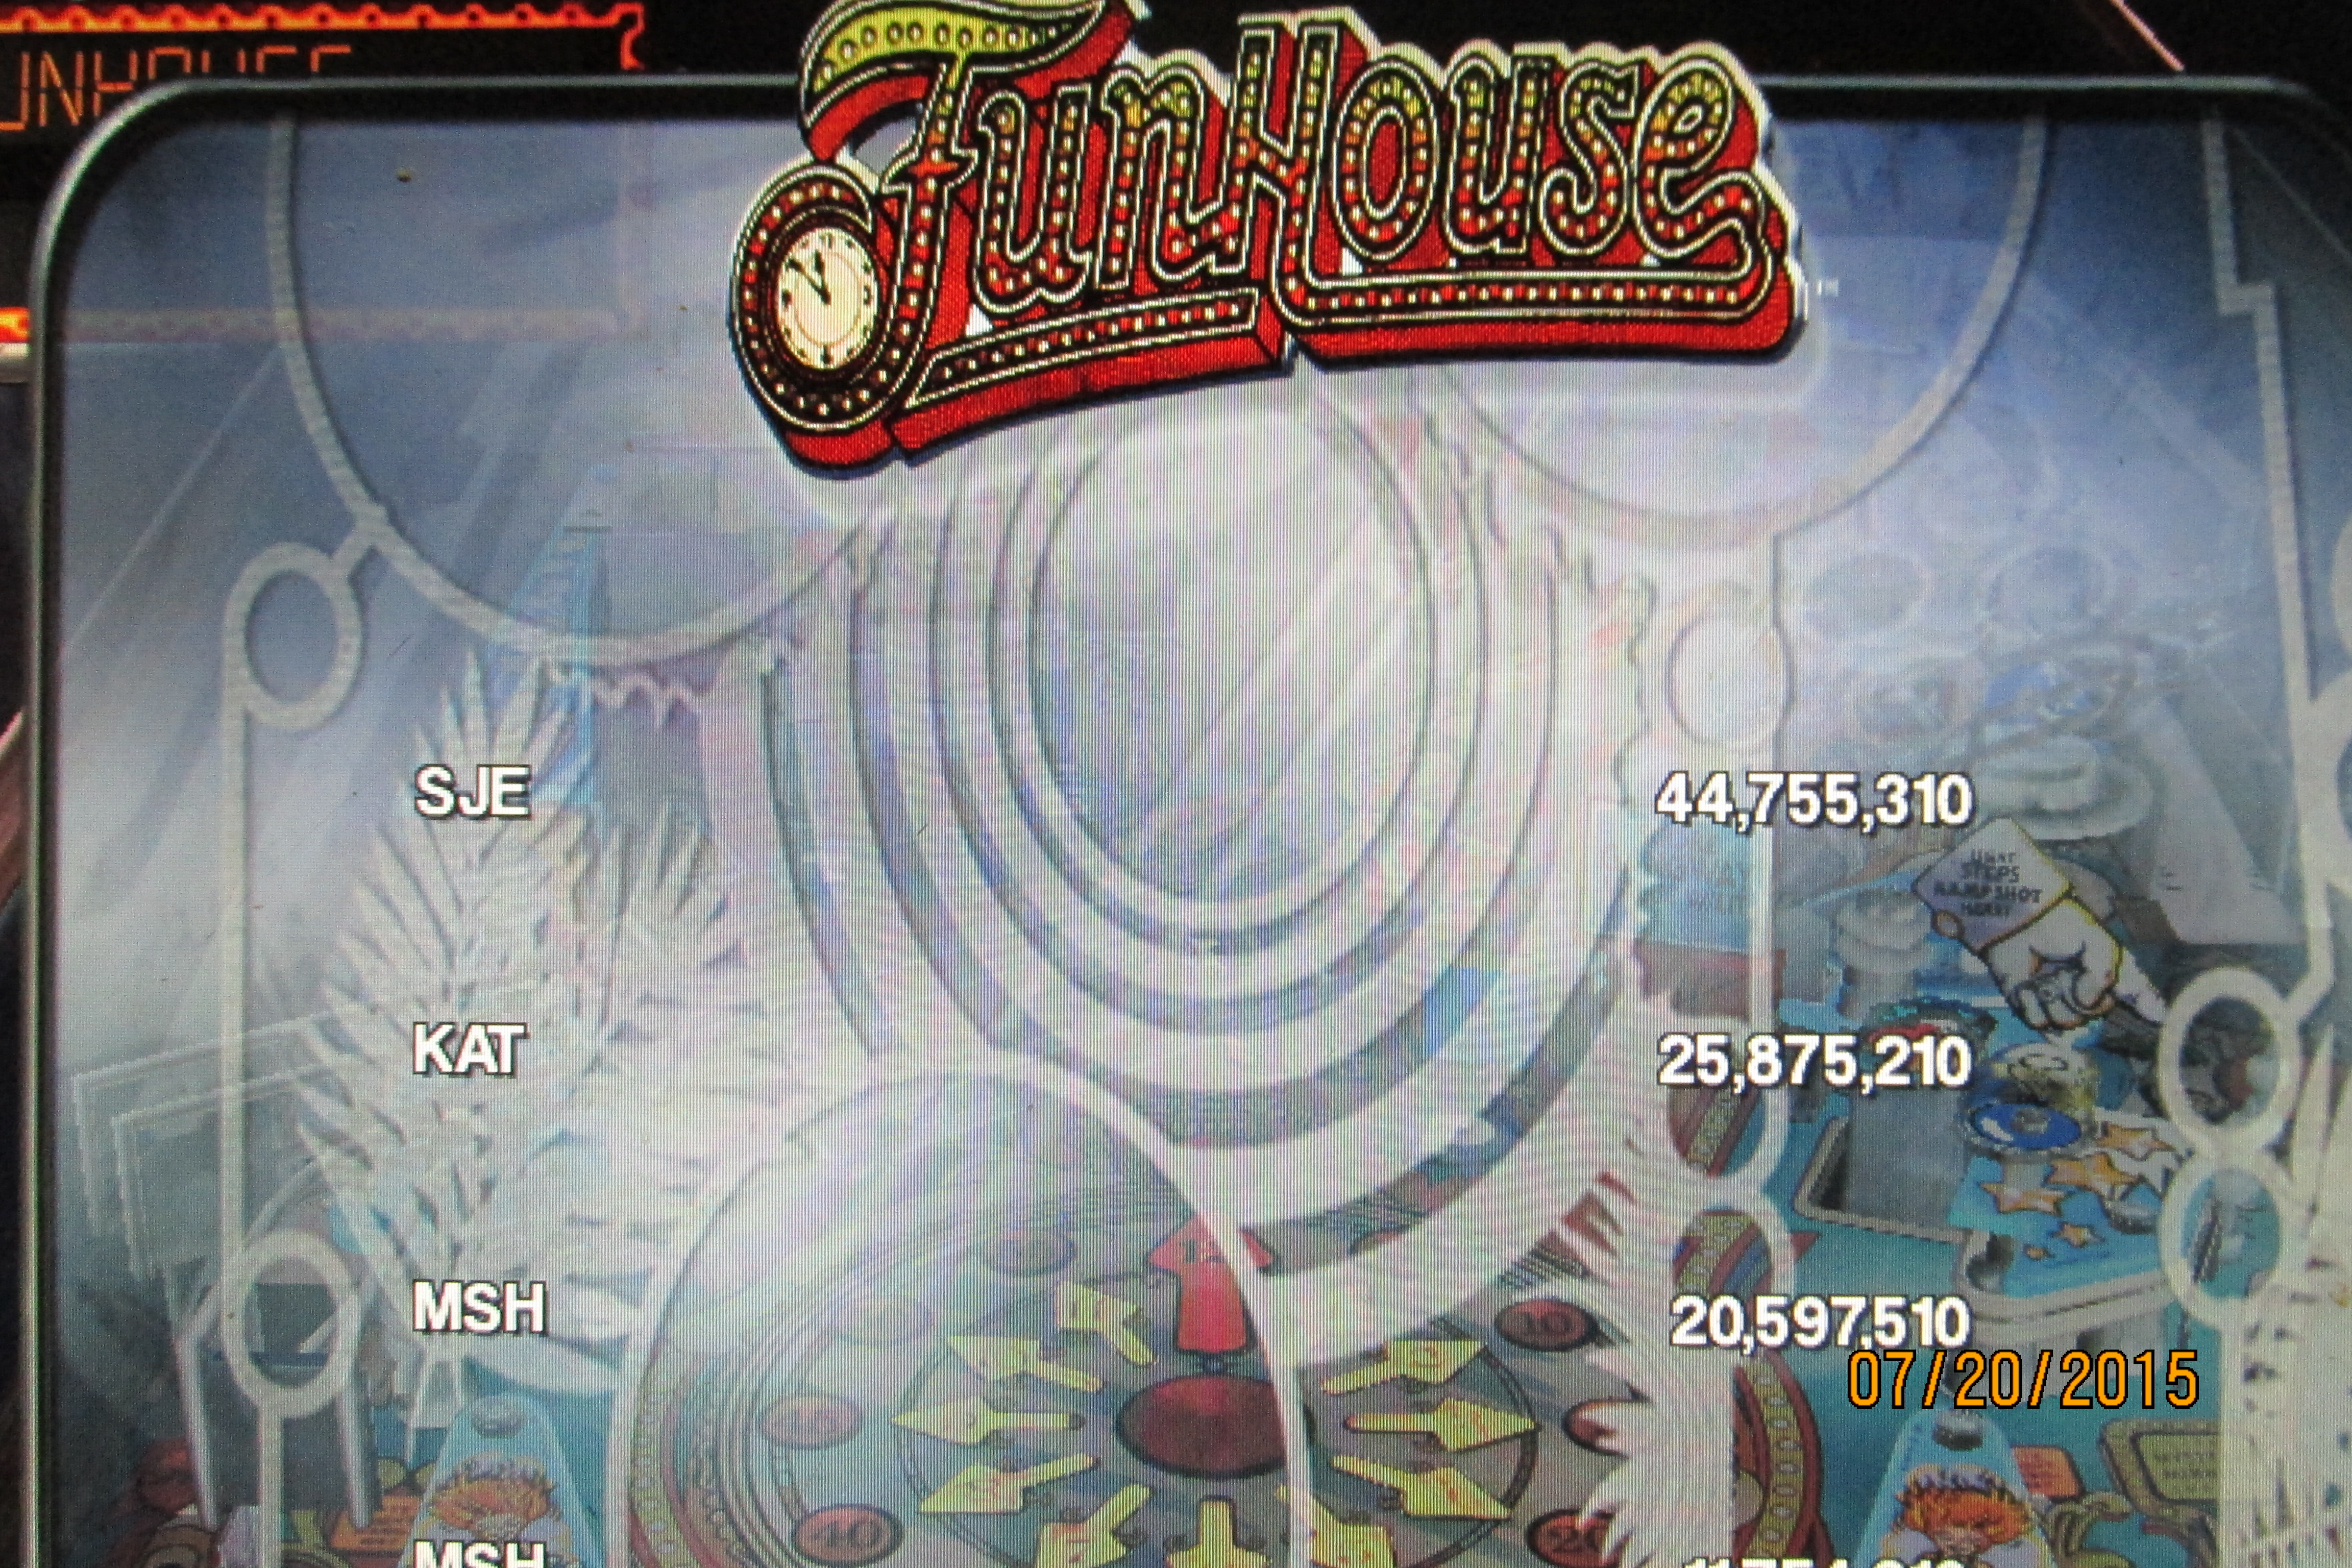 Mark: Pinball Arcade: Funhouse (PC) 20,597,510 points on 2015-07-21 16:59:20